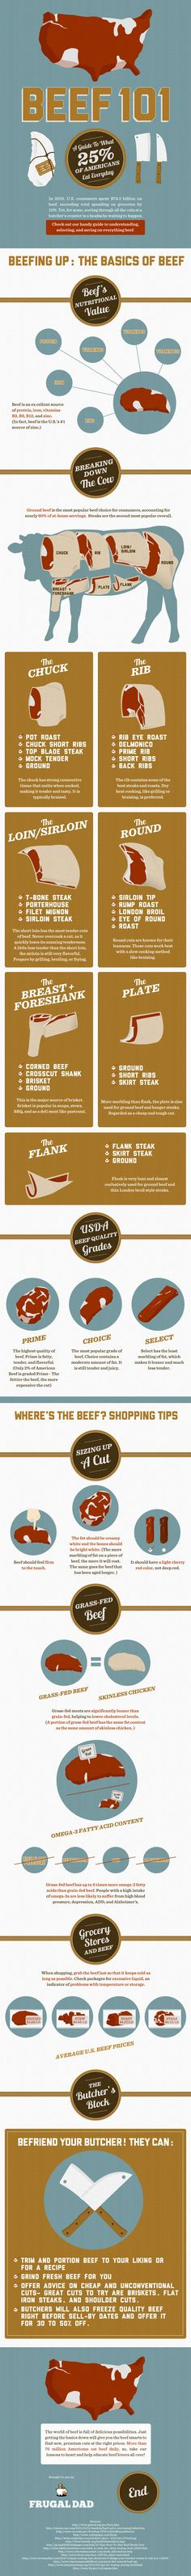 Beef 101 #infographic